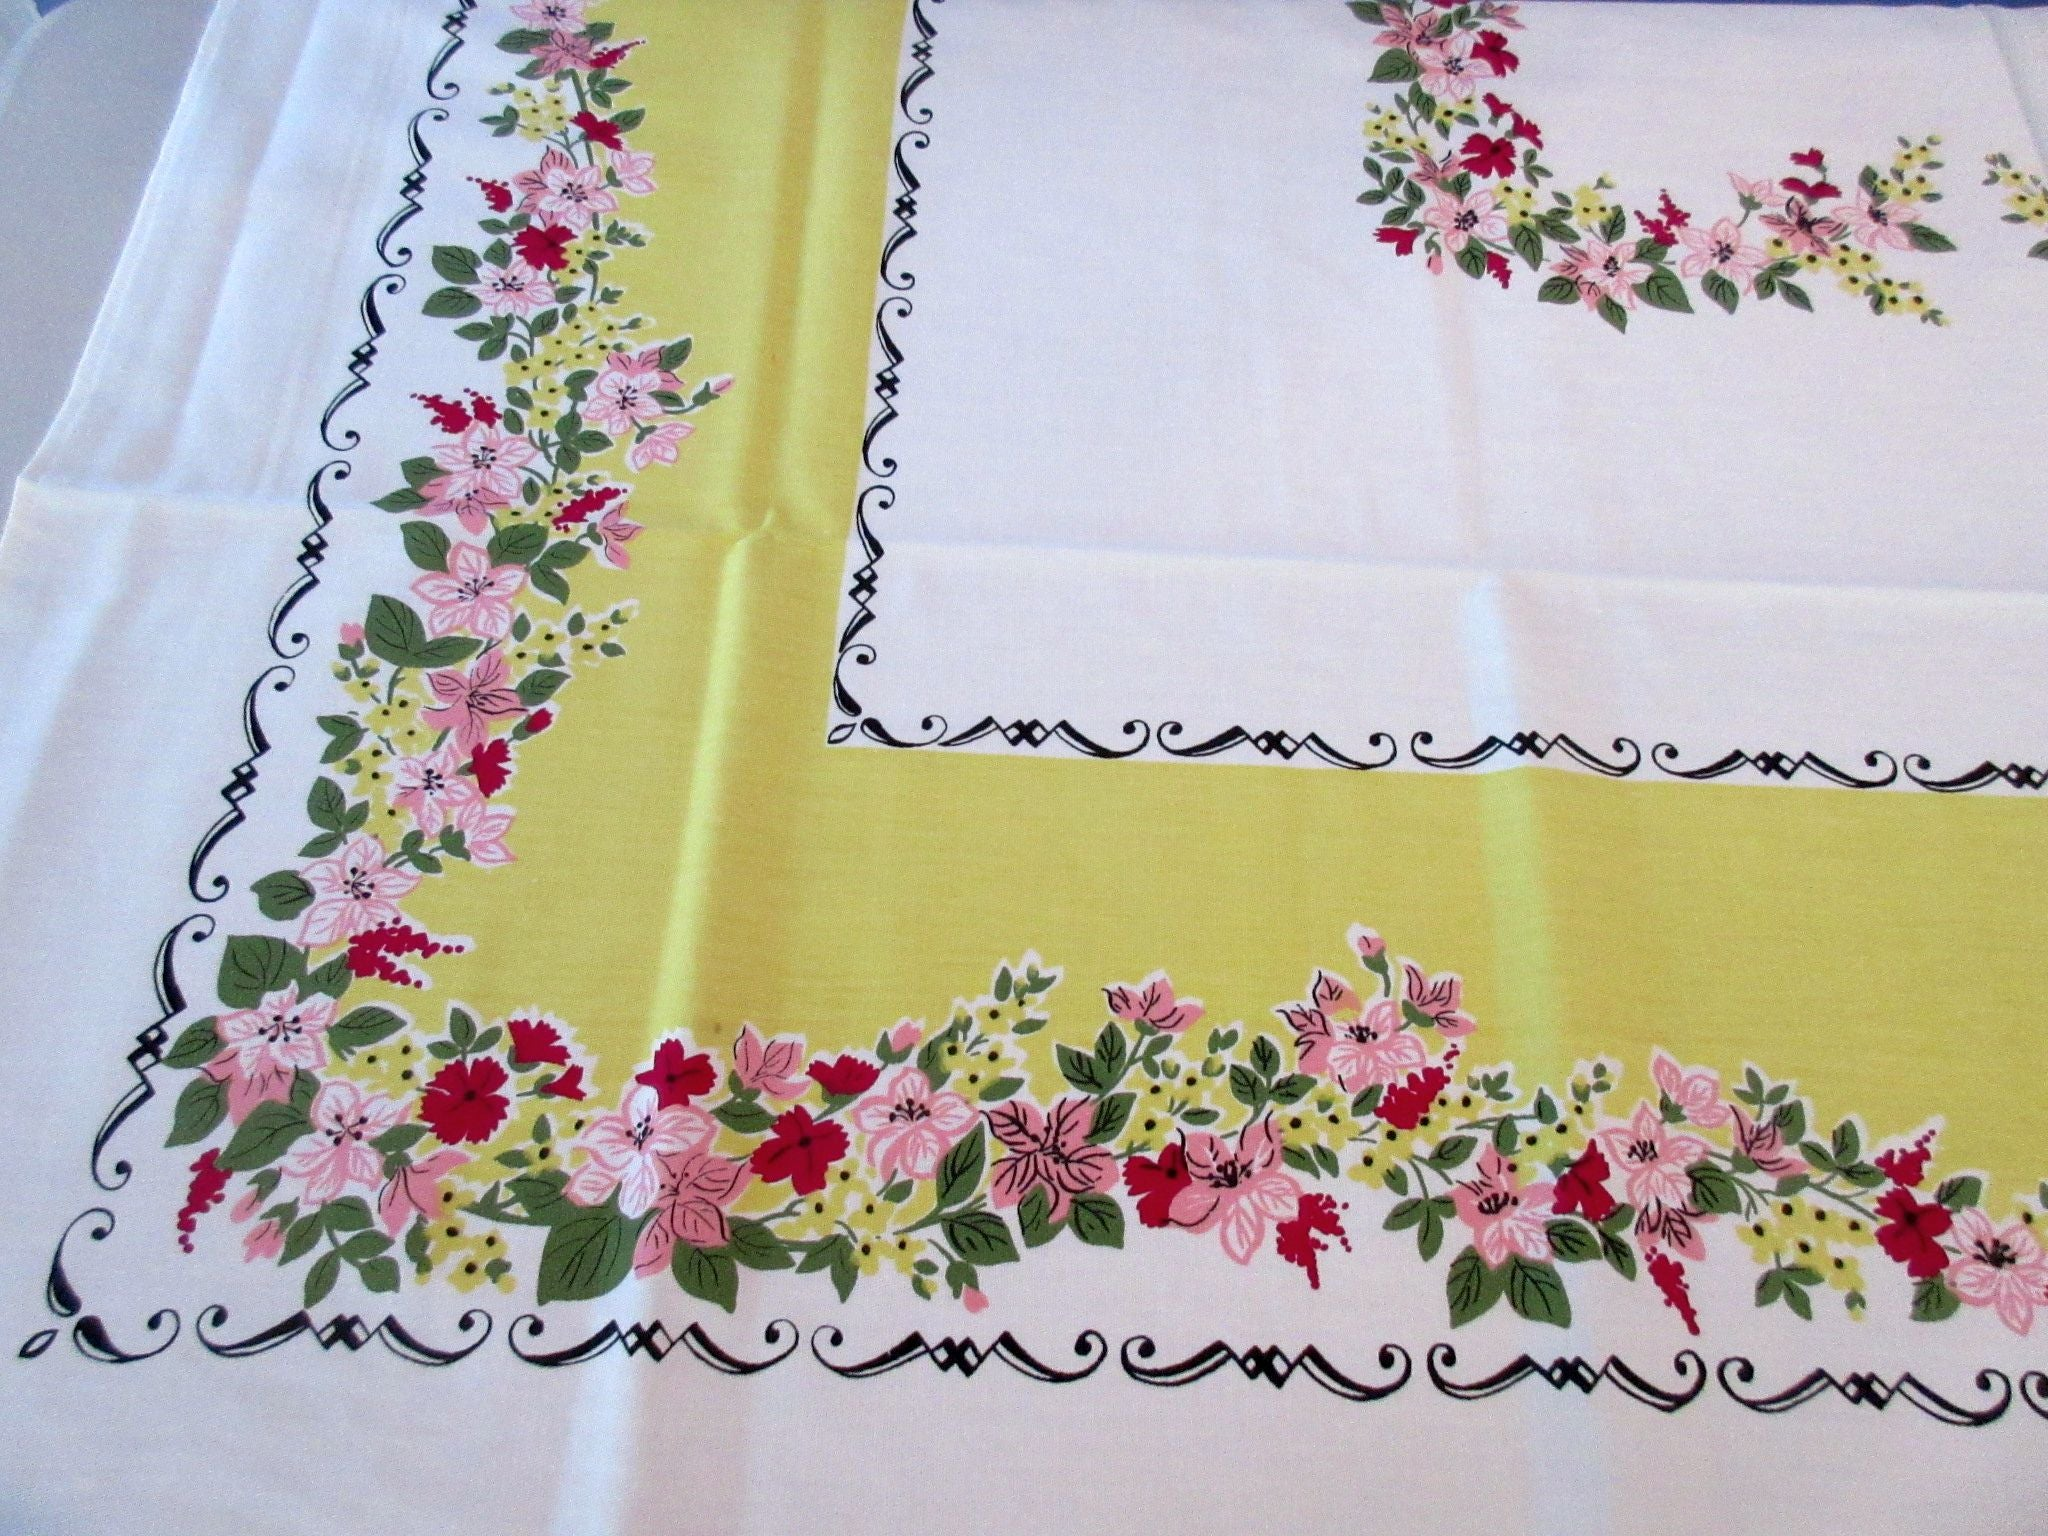 Simtex Pink Green Black on Yellow MWT Floral Vintage Printed Tablecloth